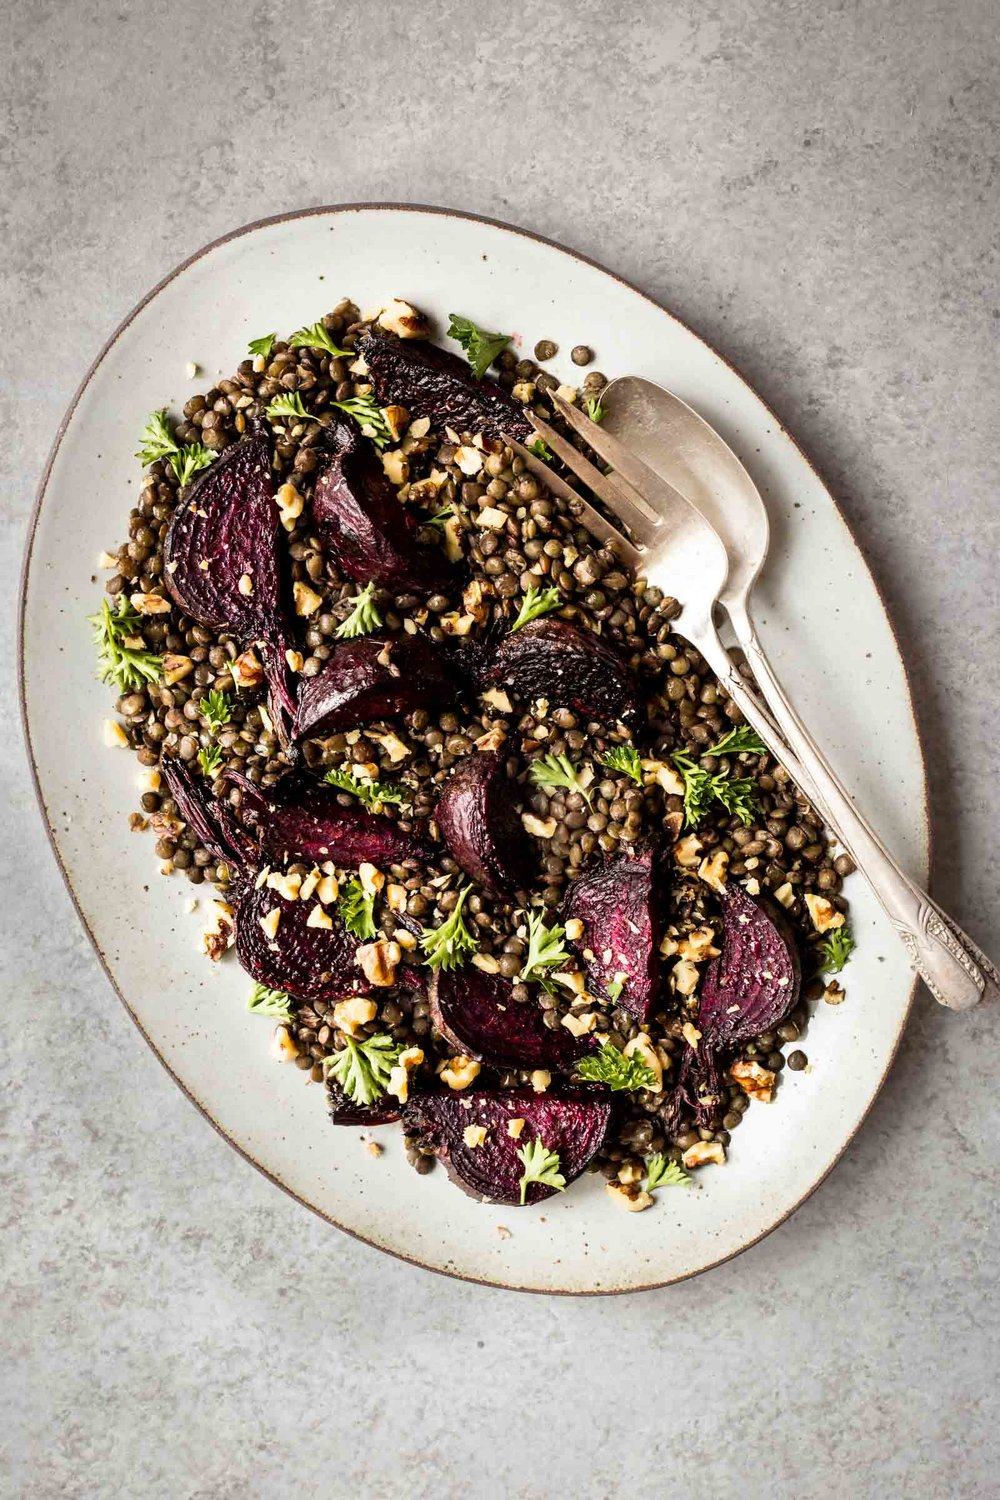 Beet & Walnut Lentil Salad